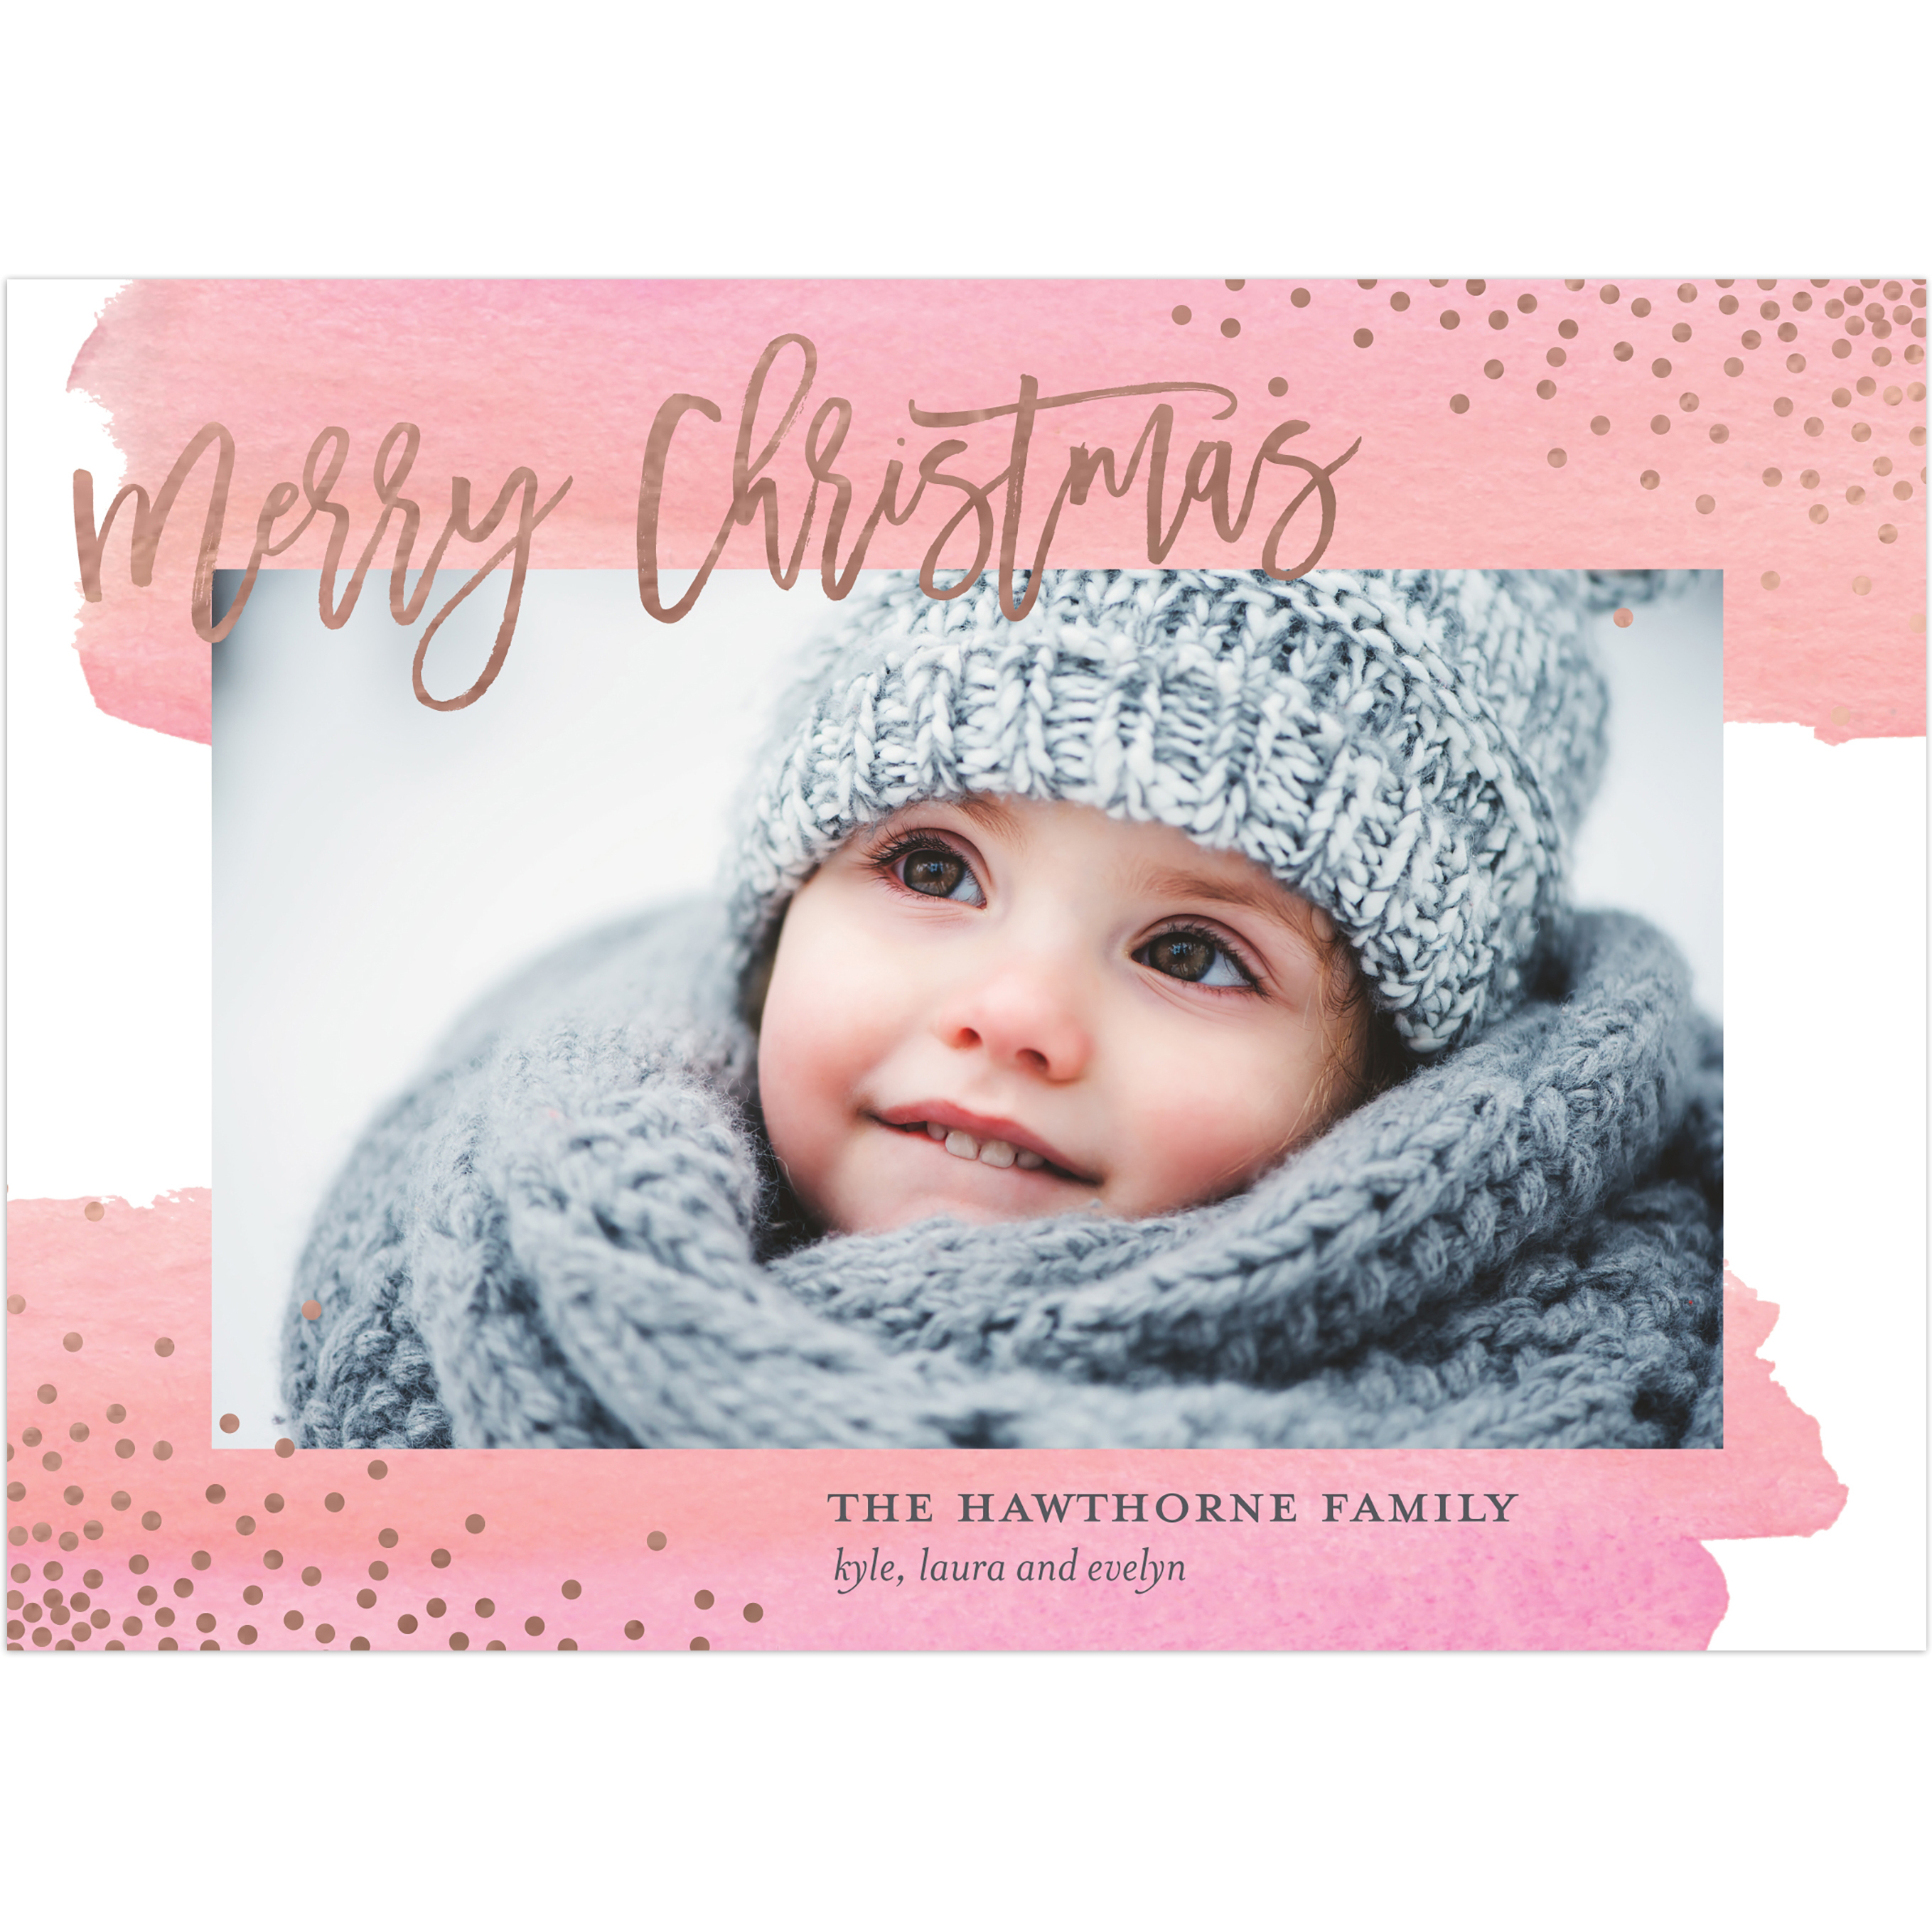 Watercolor Christmas - 5x7 Personalized Christmas Card